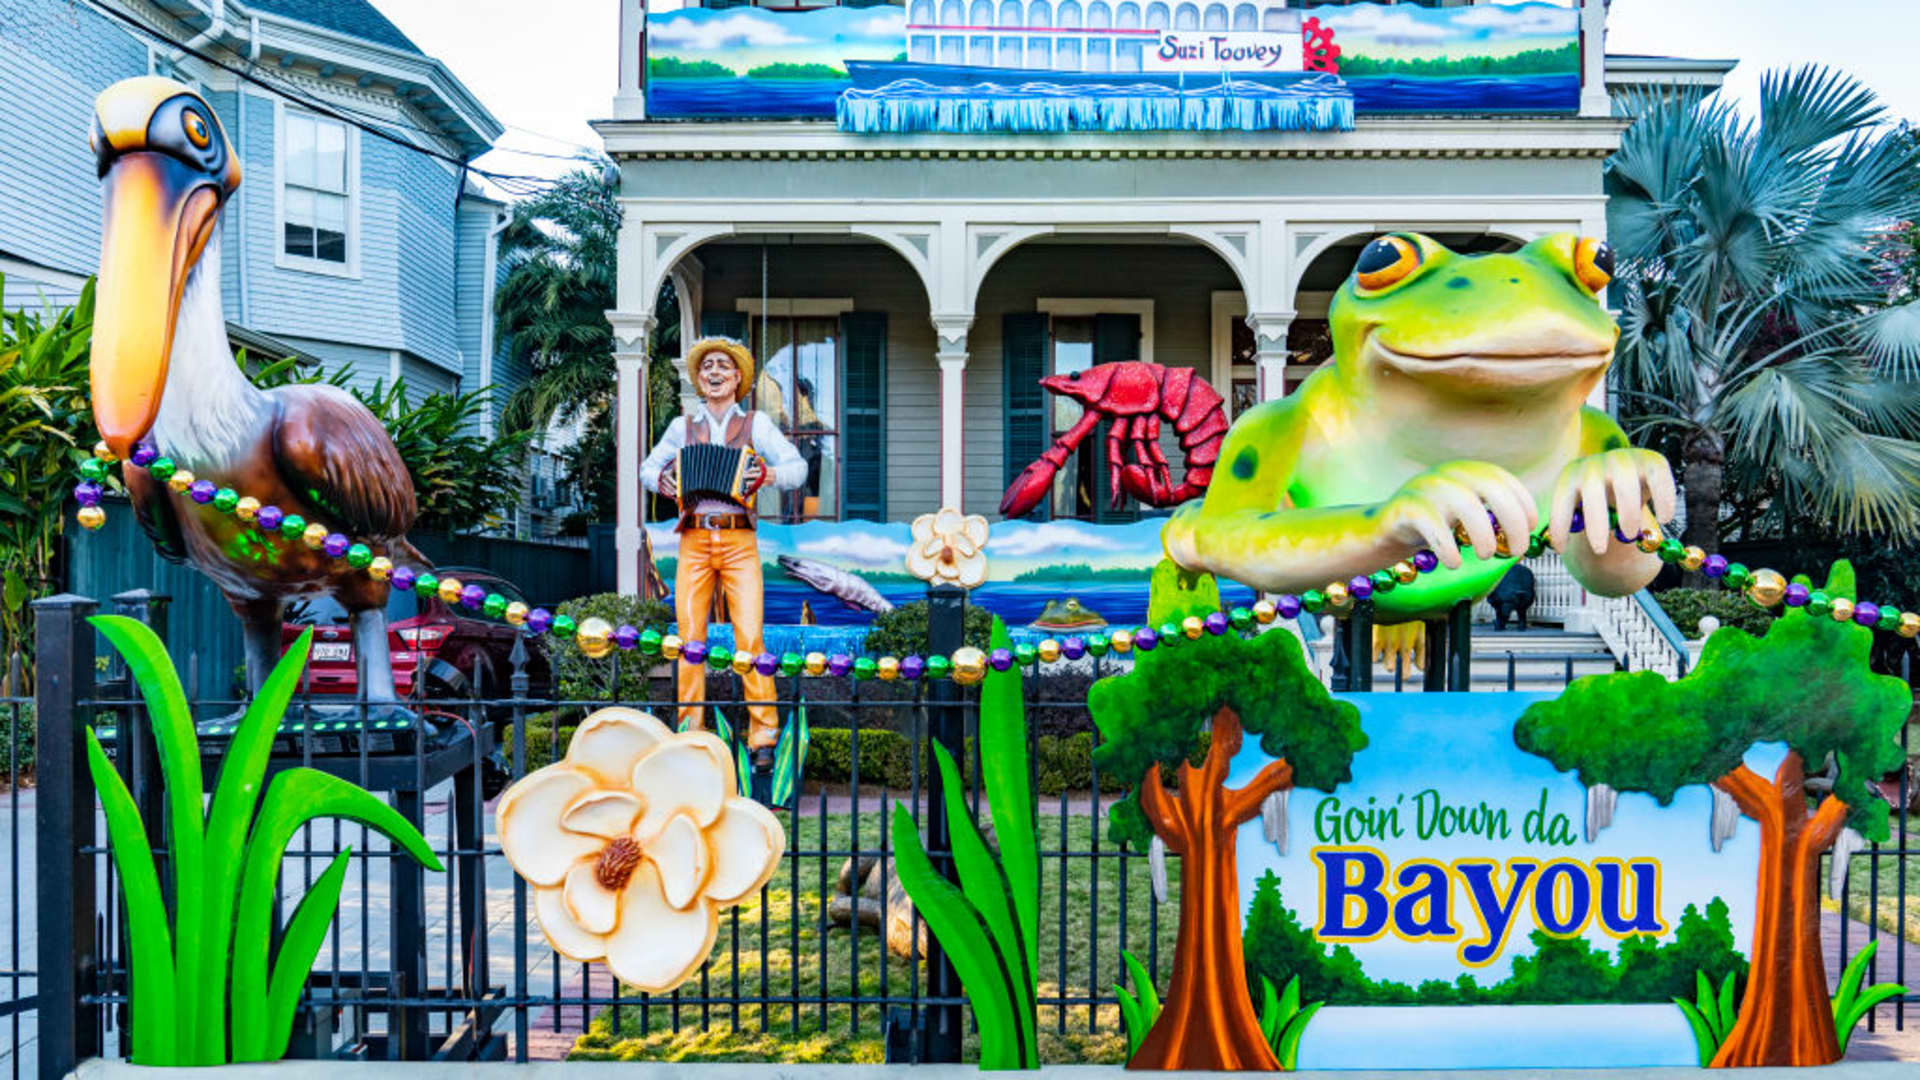 View of Goin Down Da Bayou house on February 07, 2021 in New Orleans, Louisiana. Due to the COVID-19 pandemic cancelling traditional Mardi Gras activities, New Orleanians are decorating their homes and businesses to resemble Mardi Gras floats.